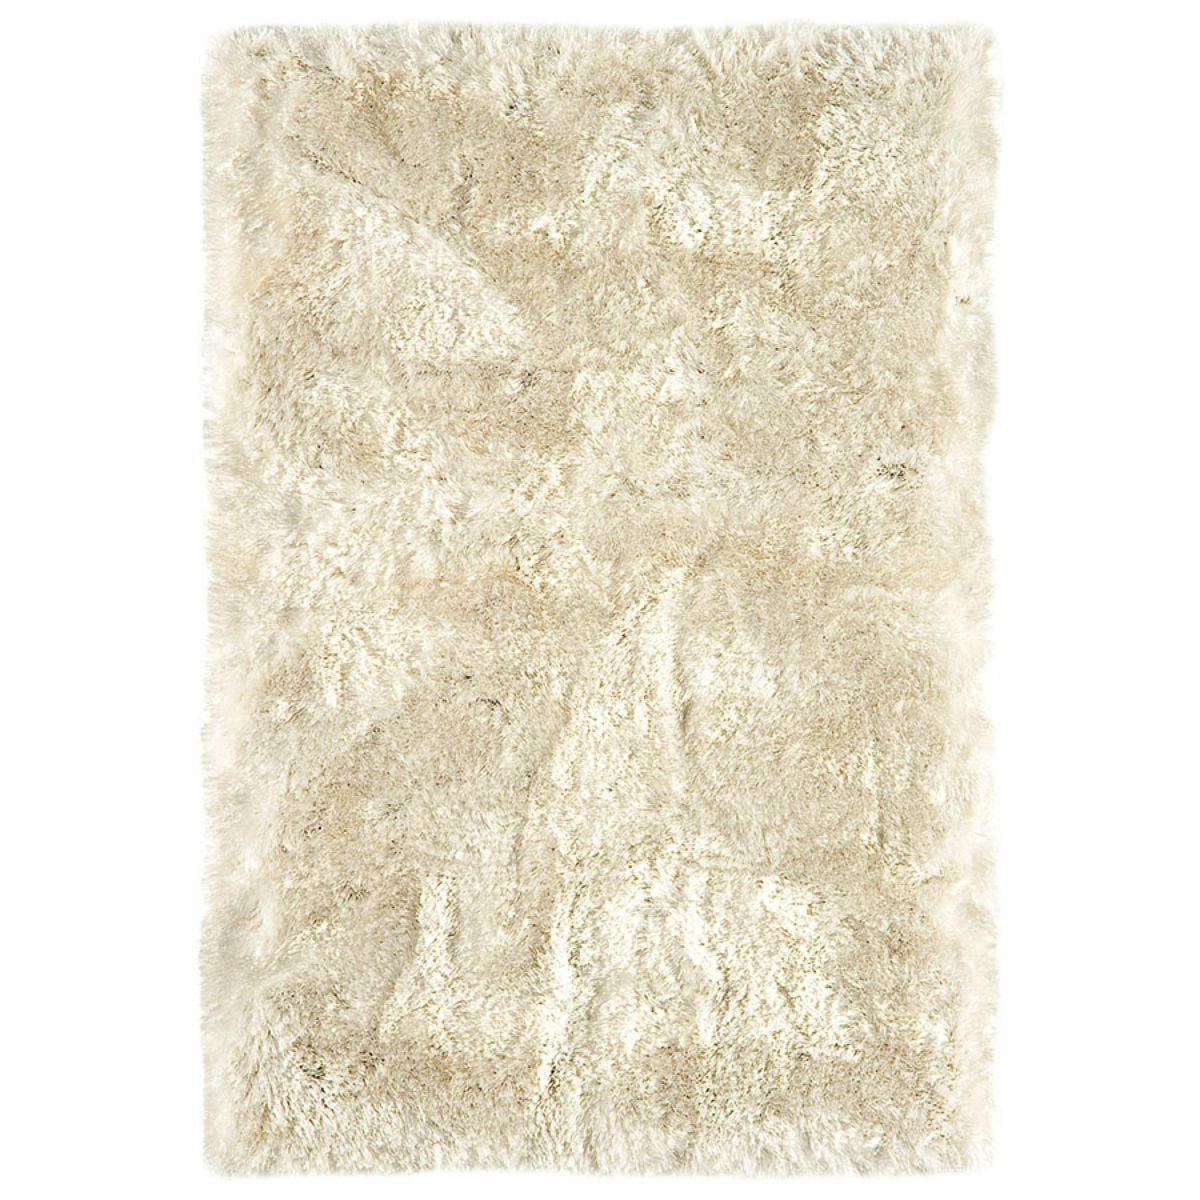 Asiatic Plush Shaggy Rug, 200 x 300cm - Pearl